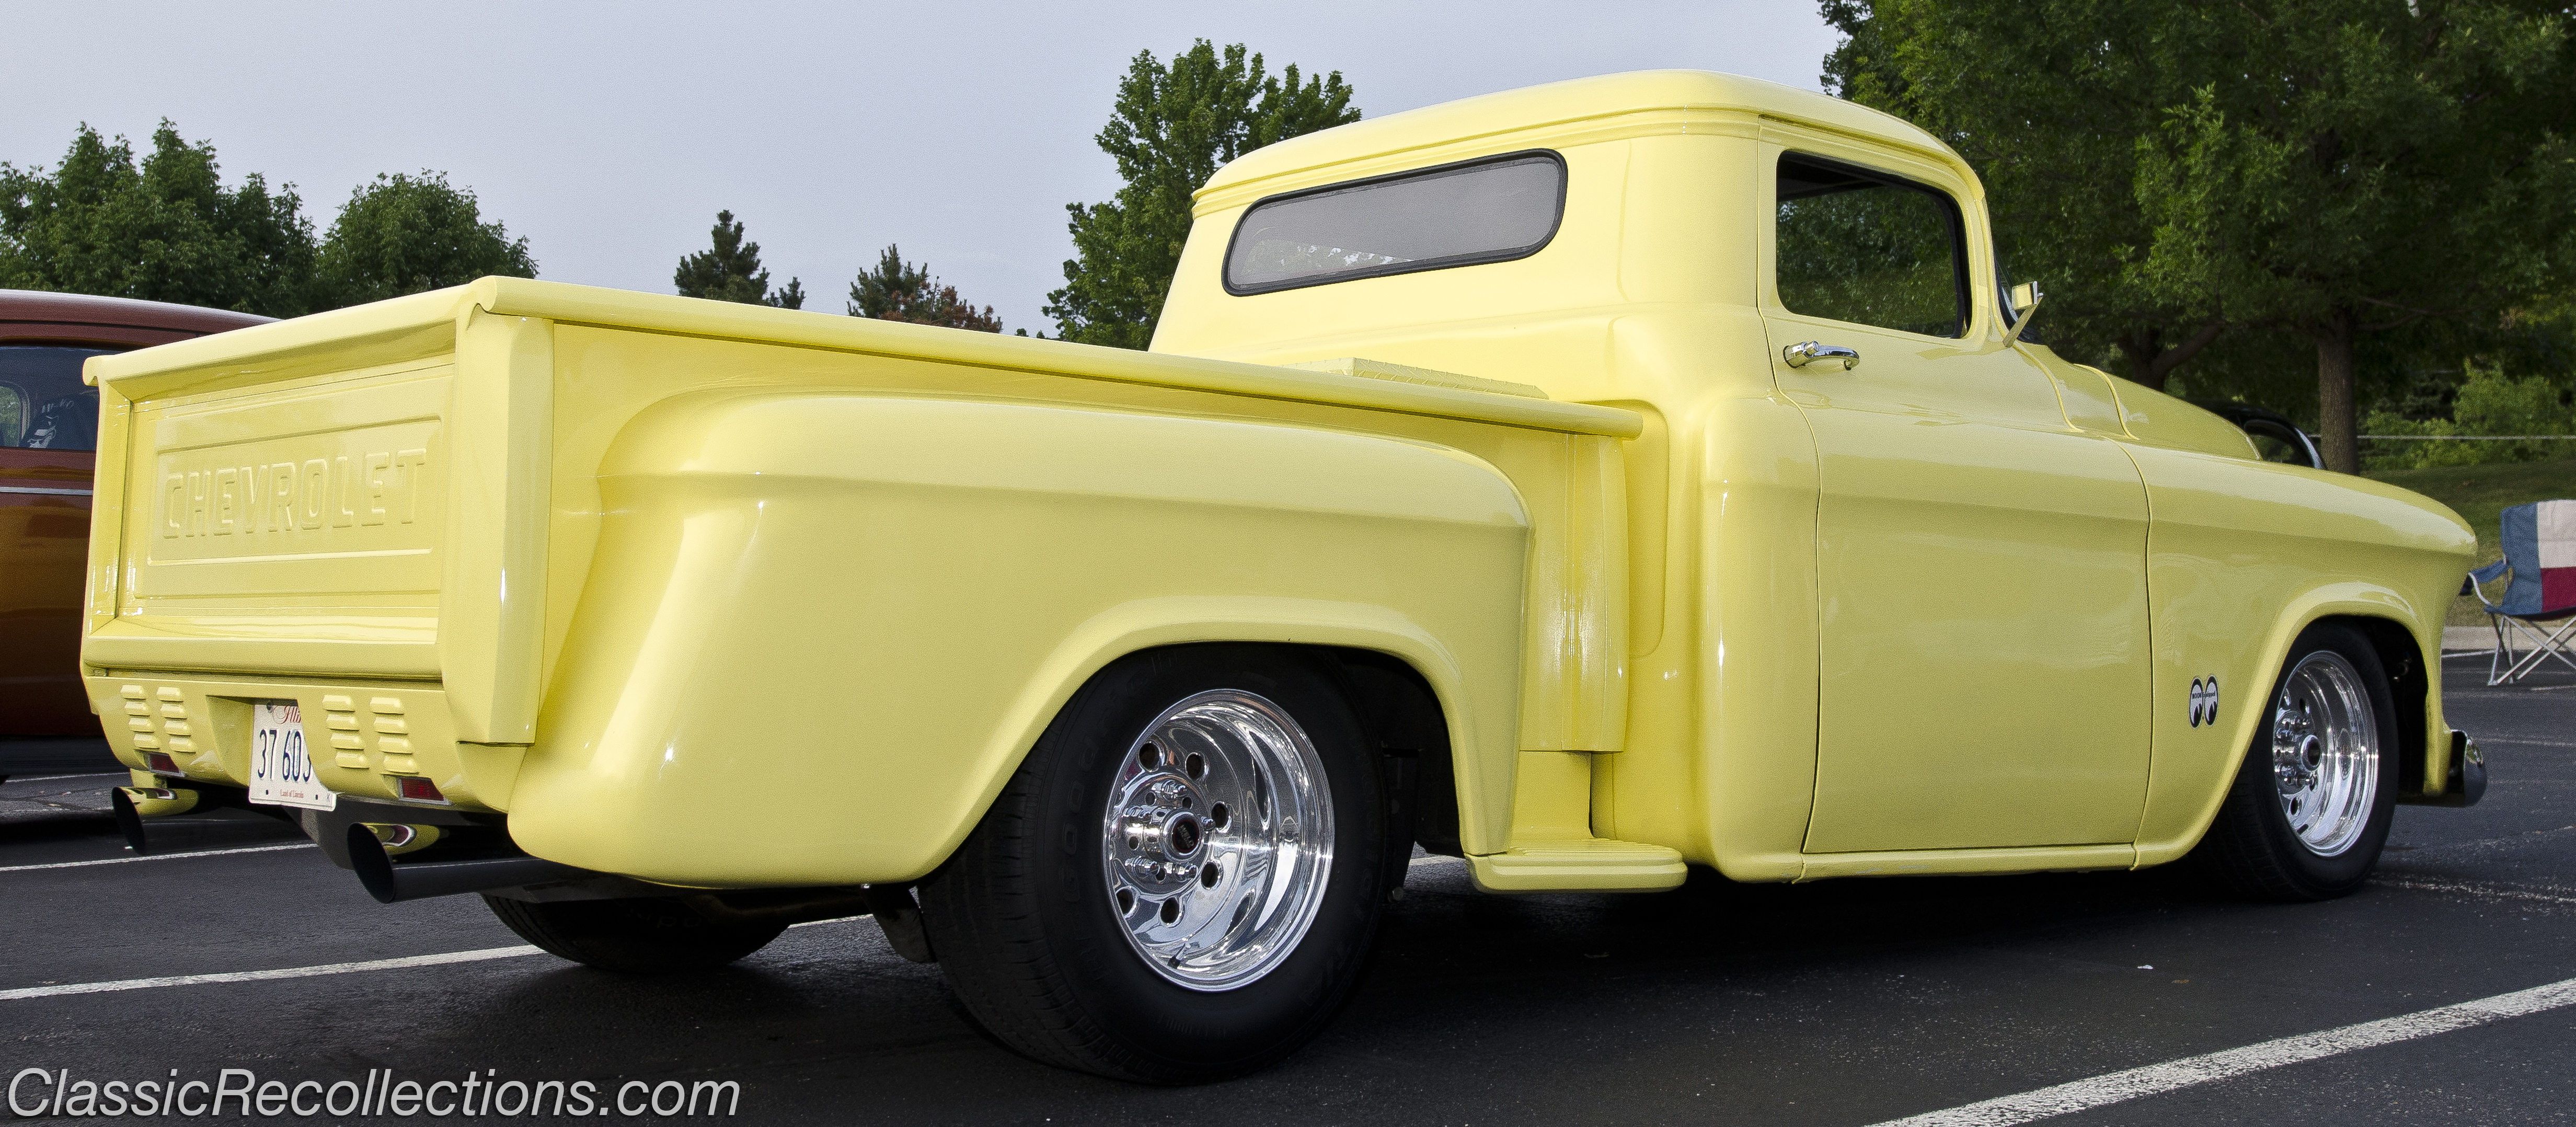 Feature 1956 Chevrolet 3100 Pickup Classic Recollections